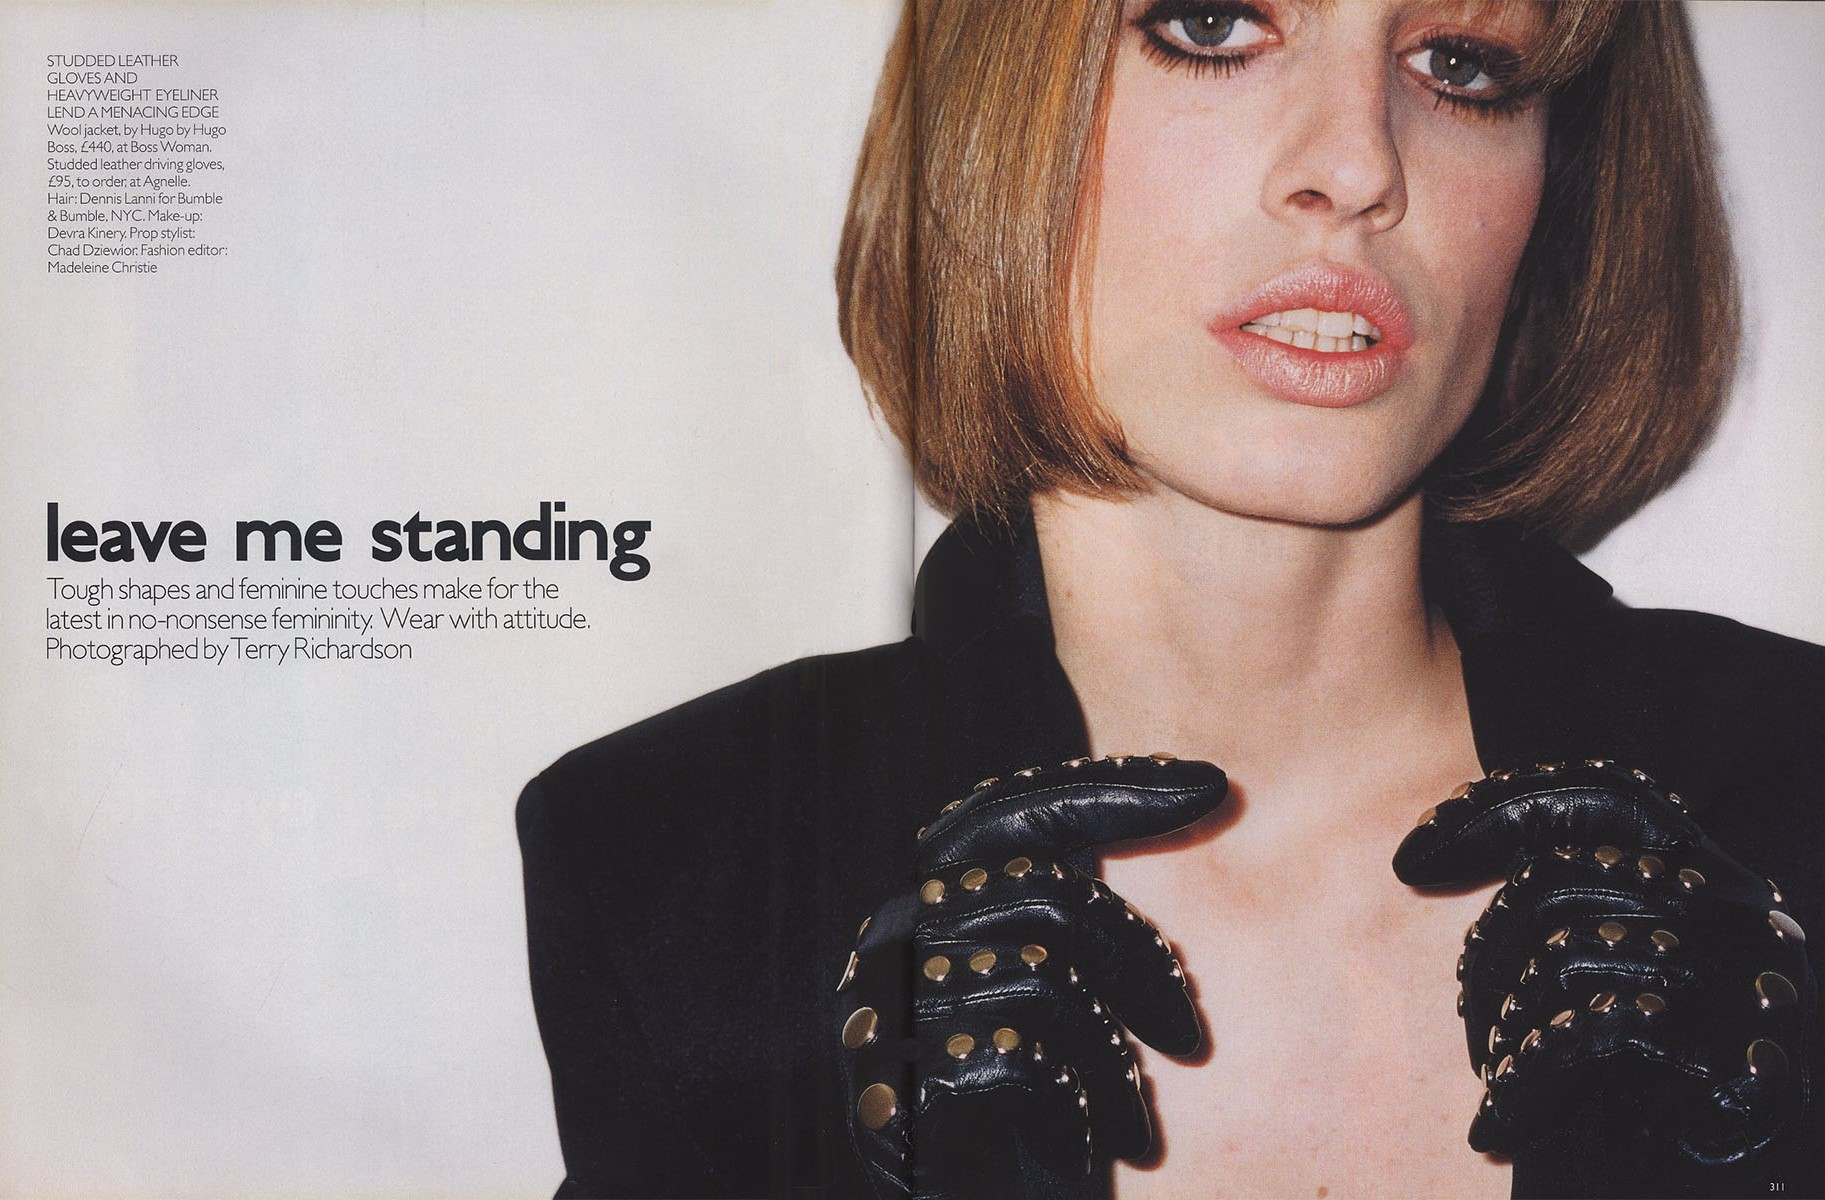 leave me standing natasa vojnovic photography terry richardson vogue uk october 2001 1